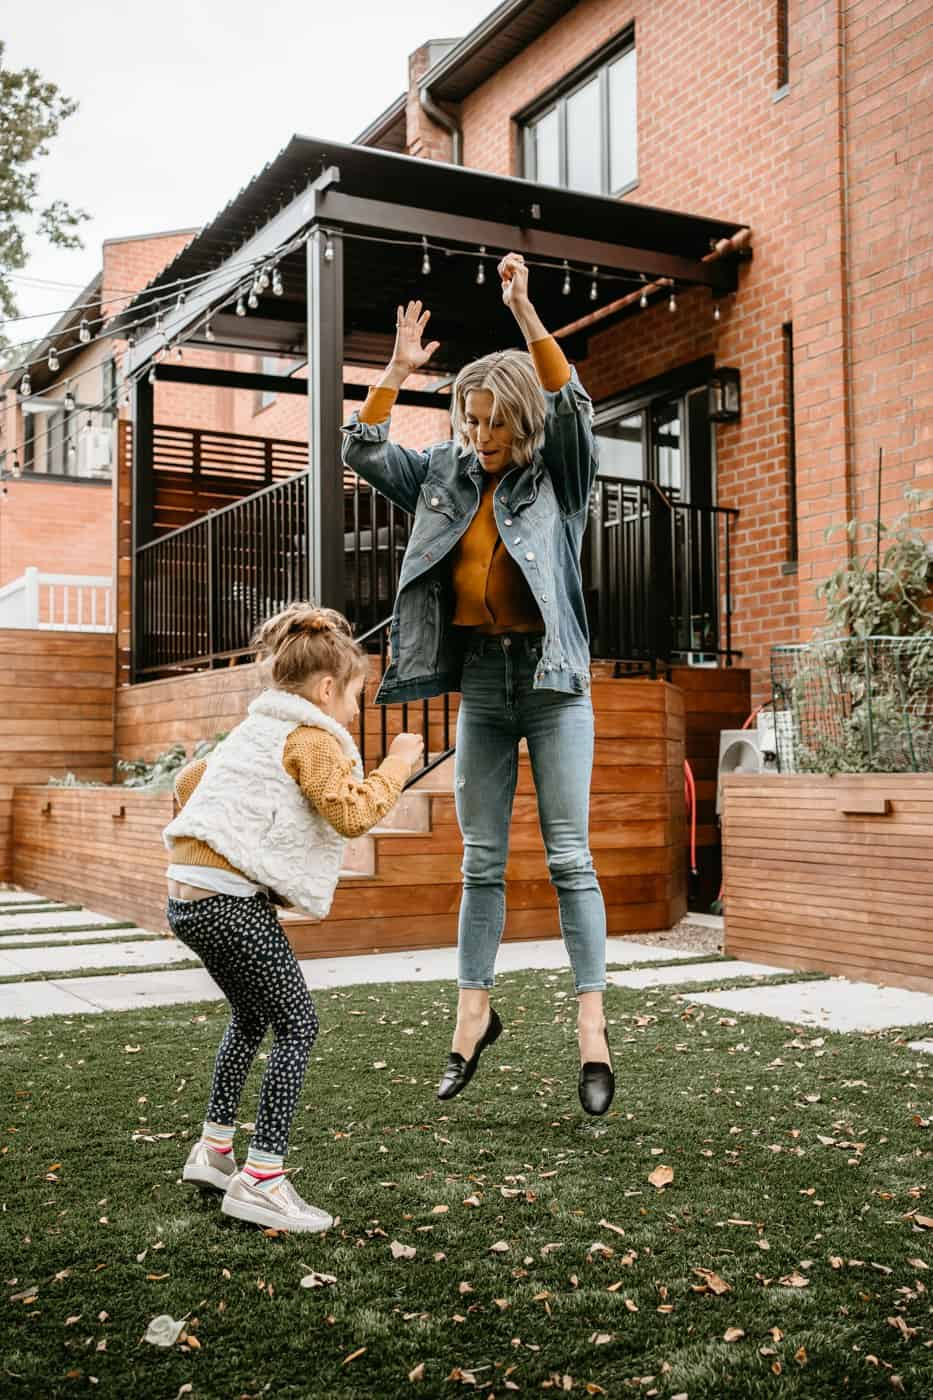 Mom and daughter jumping in backyard